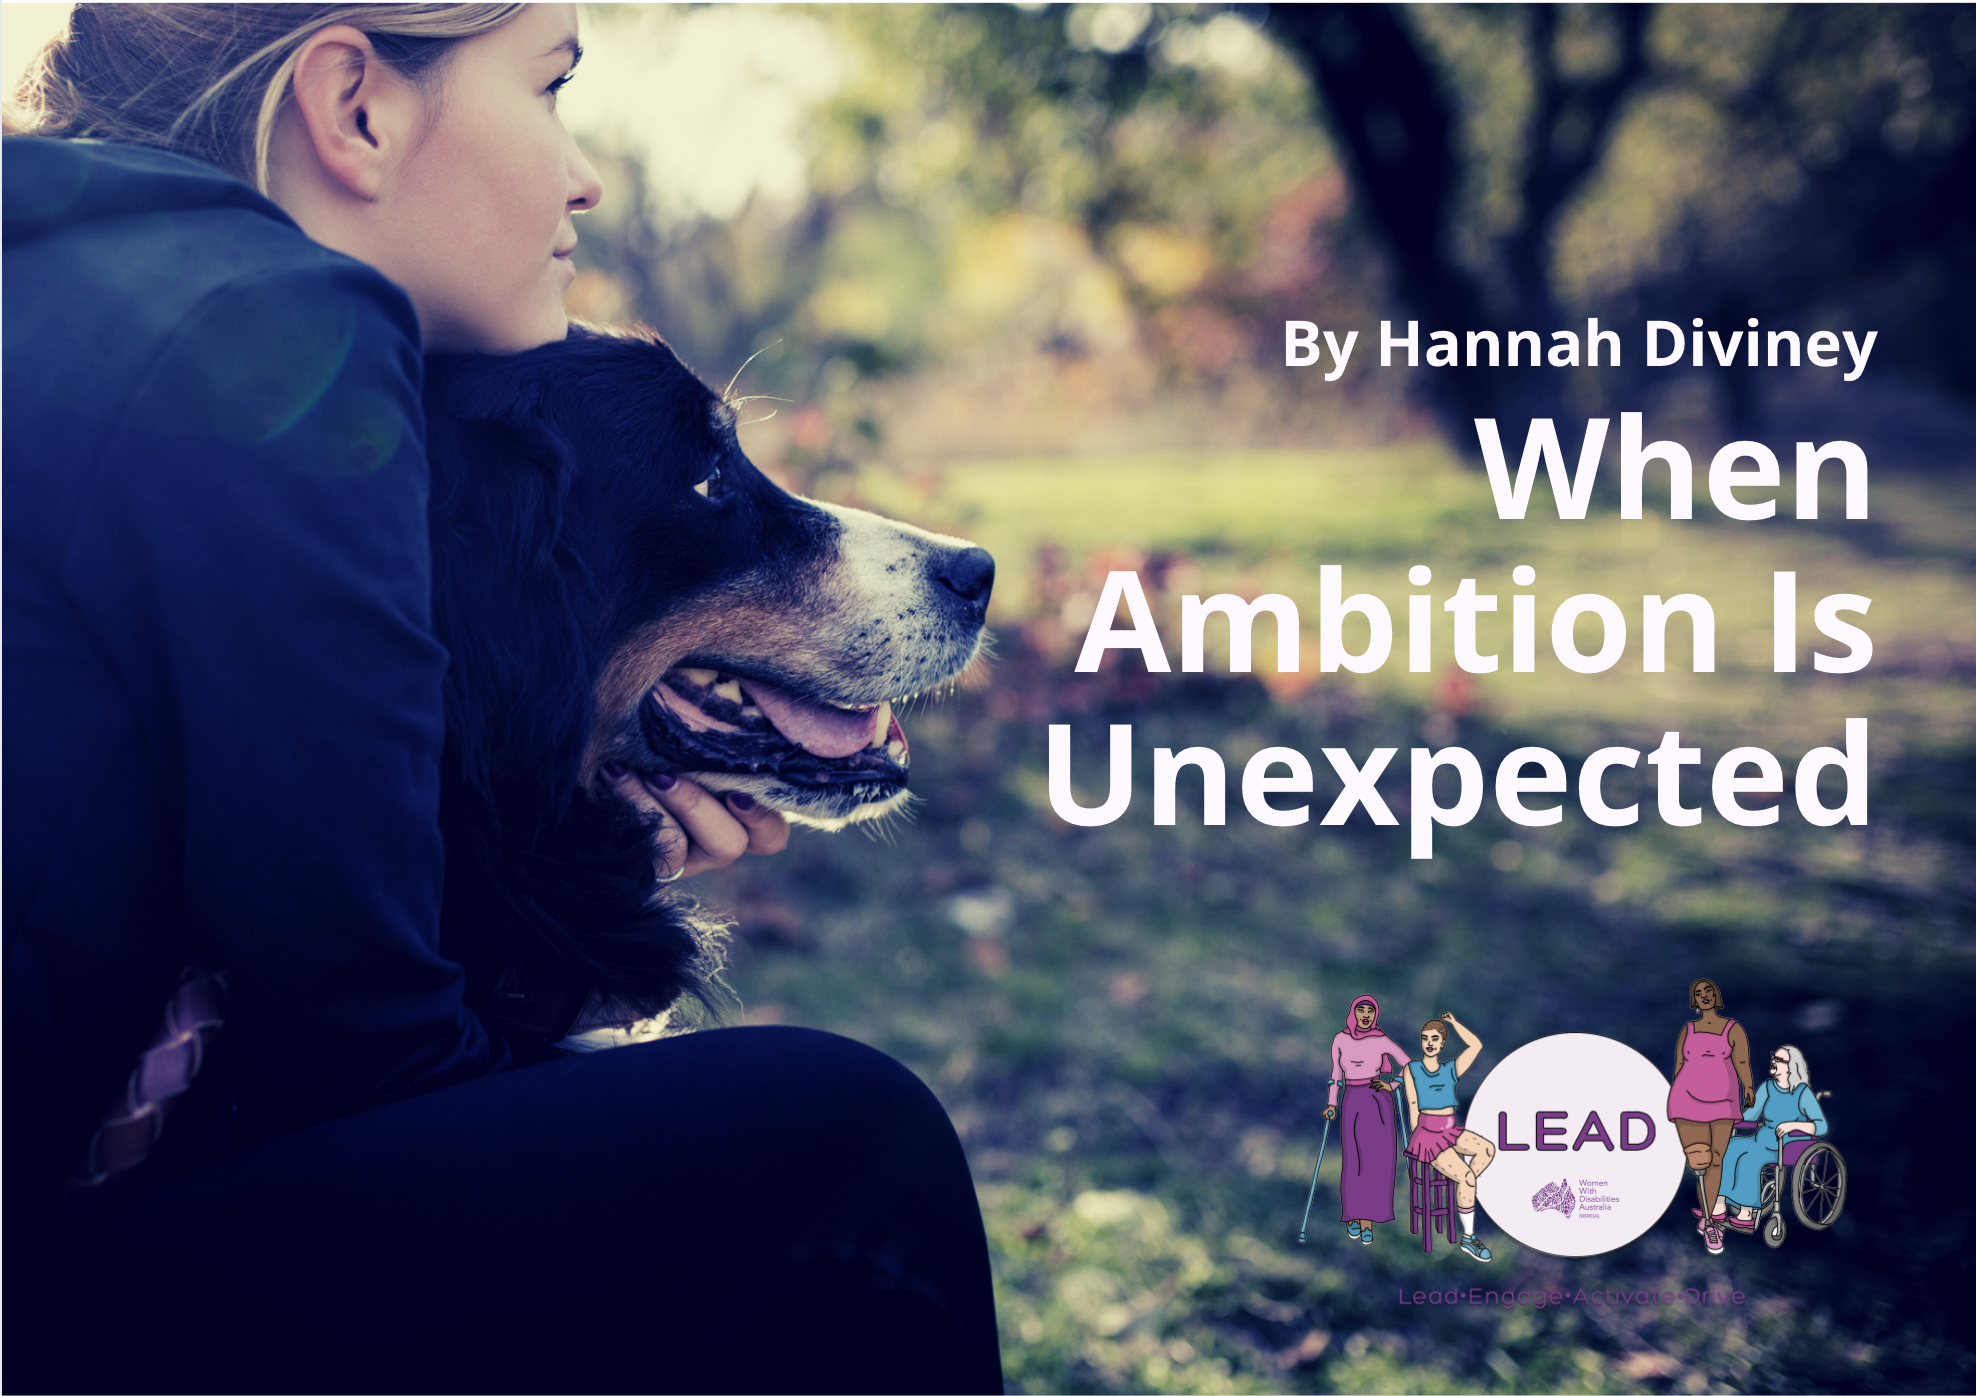 A photo of a woman hugging her dog. White text reads ' By Hannah Diviney, When Ambition is Unexpected'.